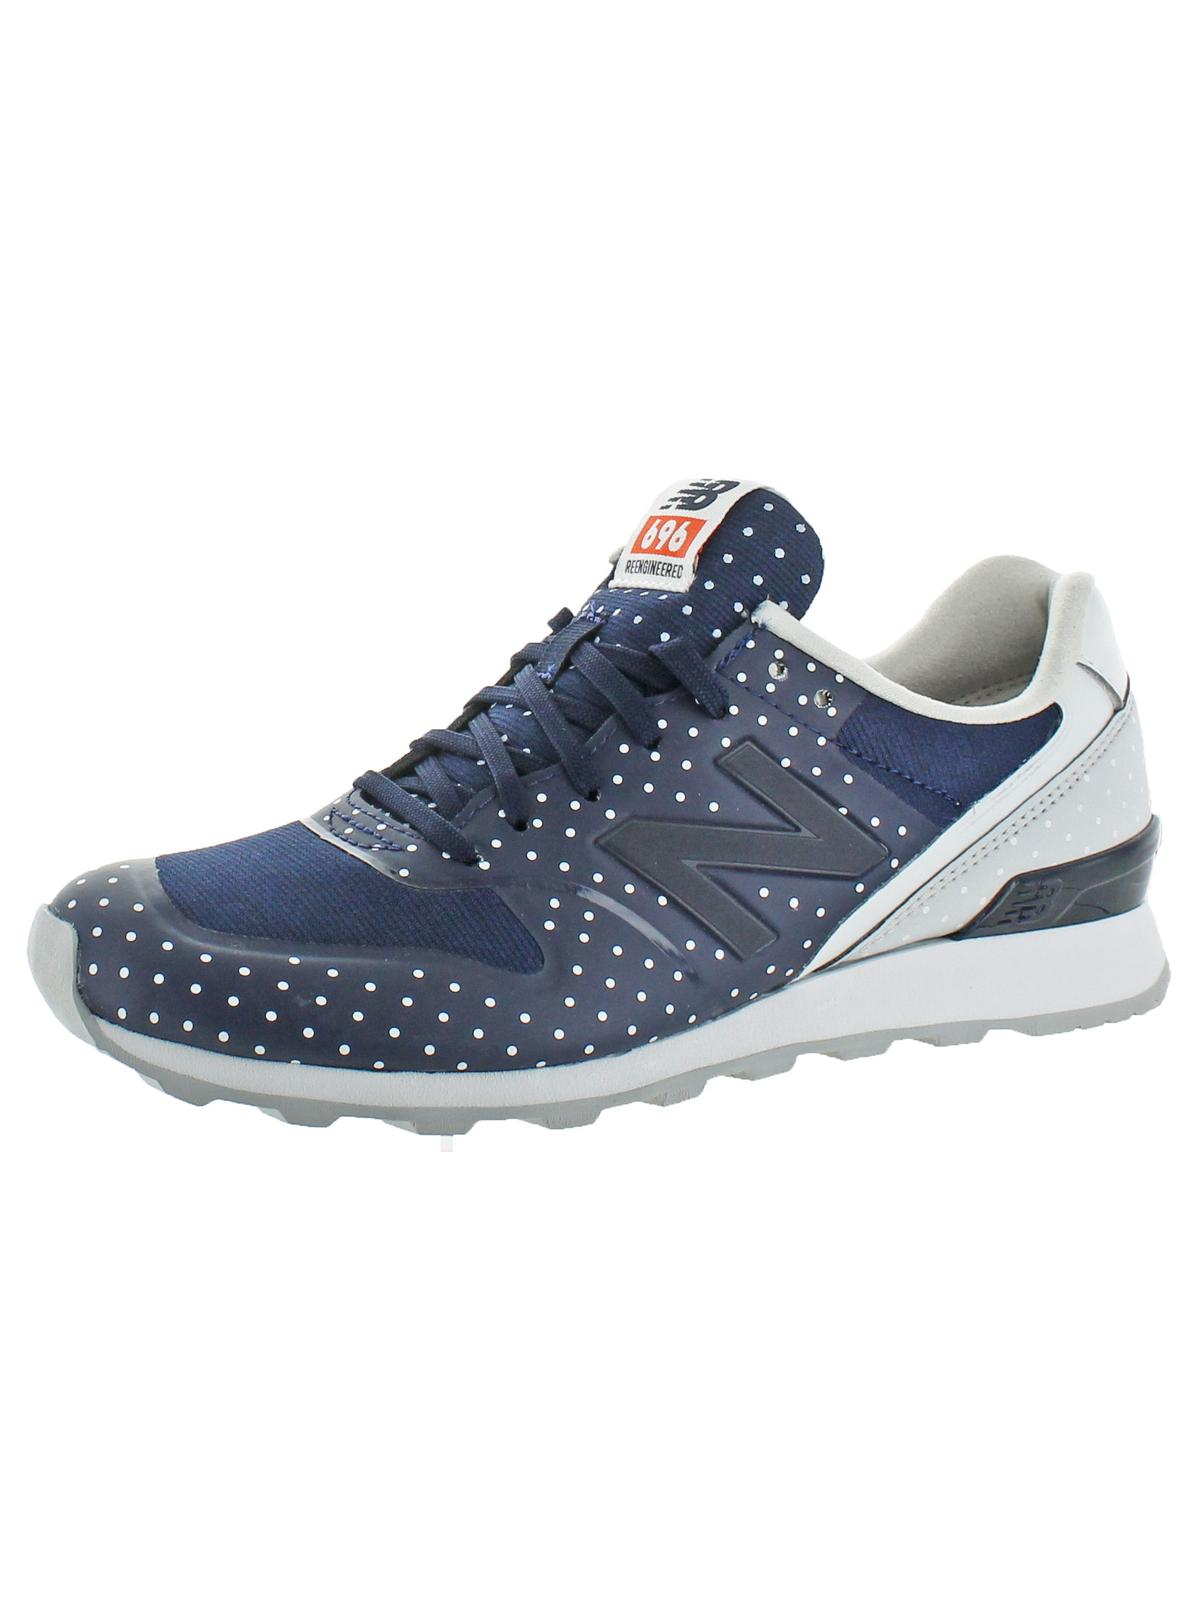 New Balance Womens 696 Faux Leather Mini Dot Running Shoes